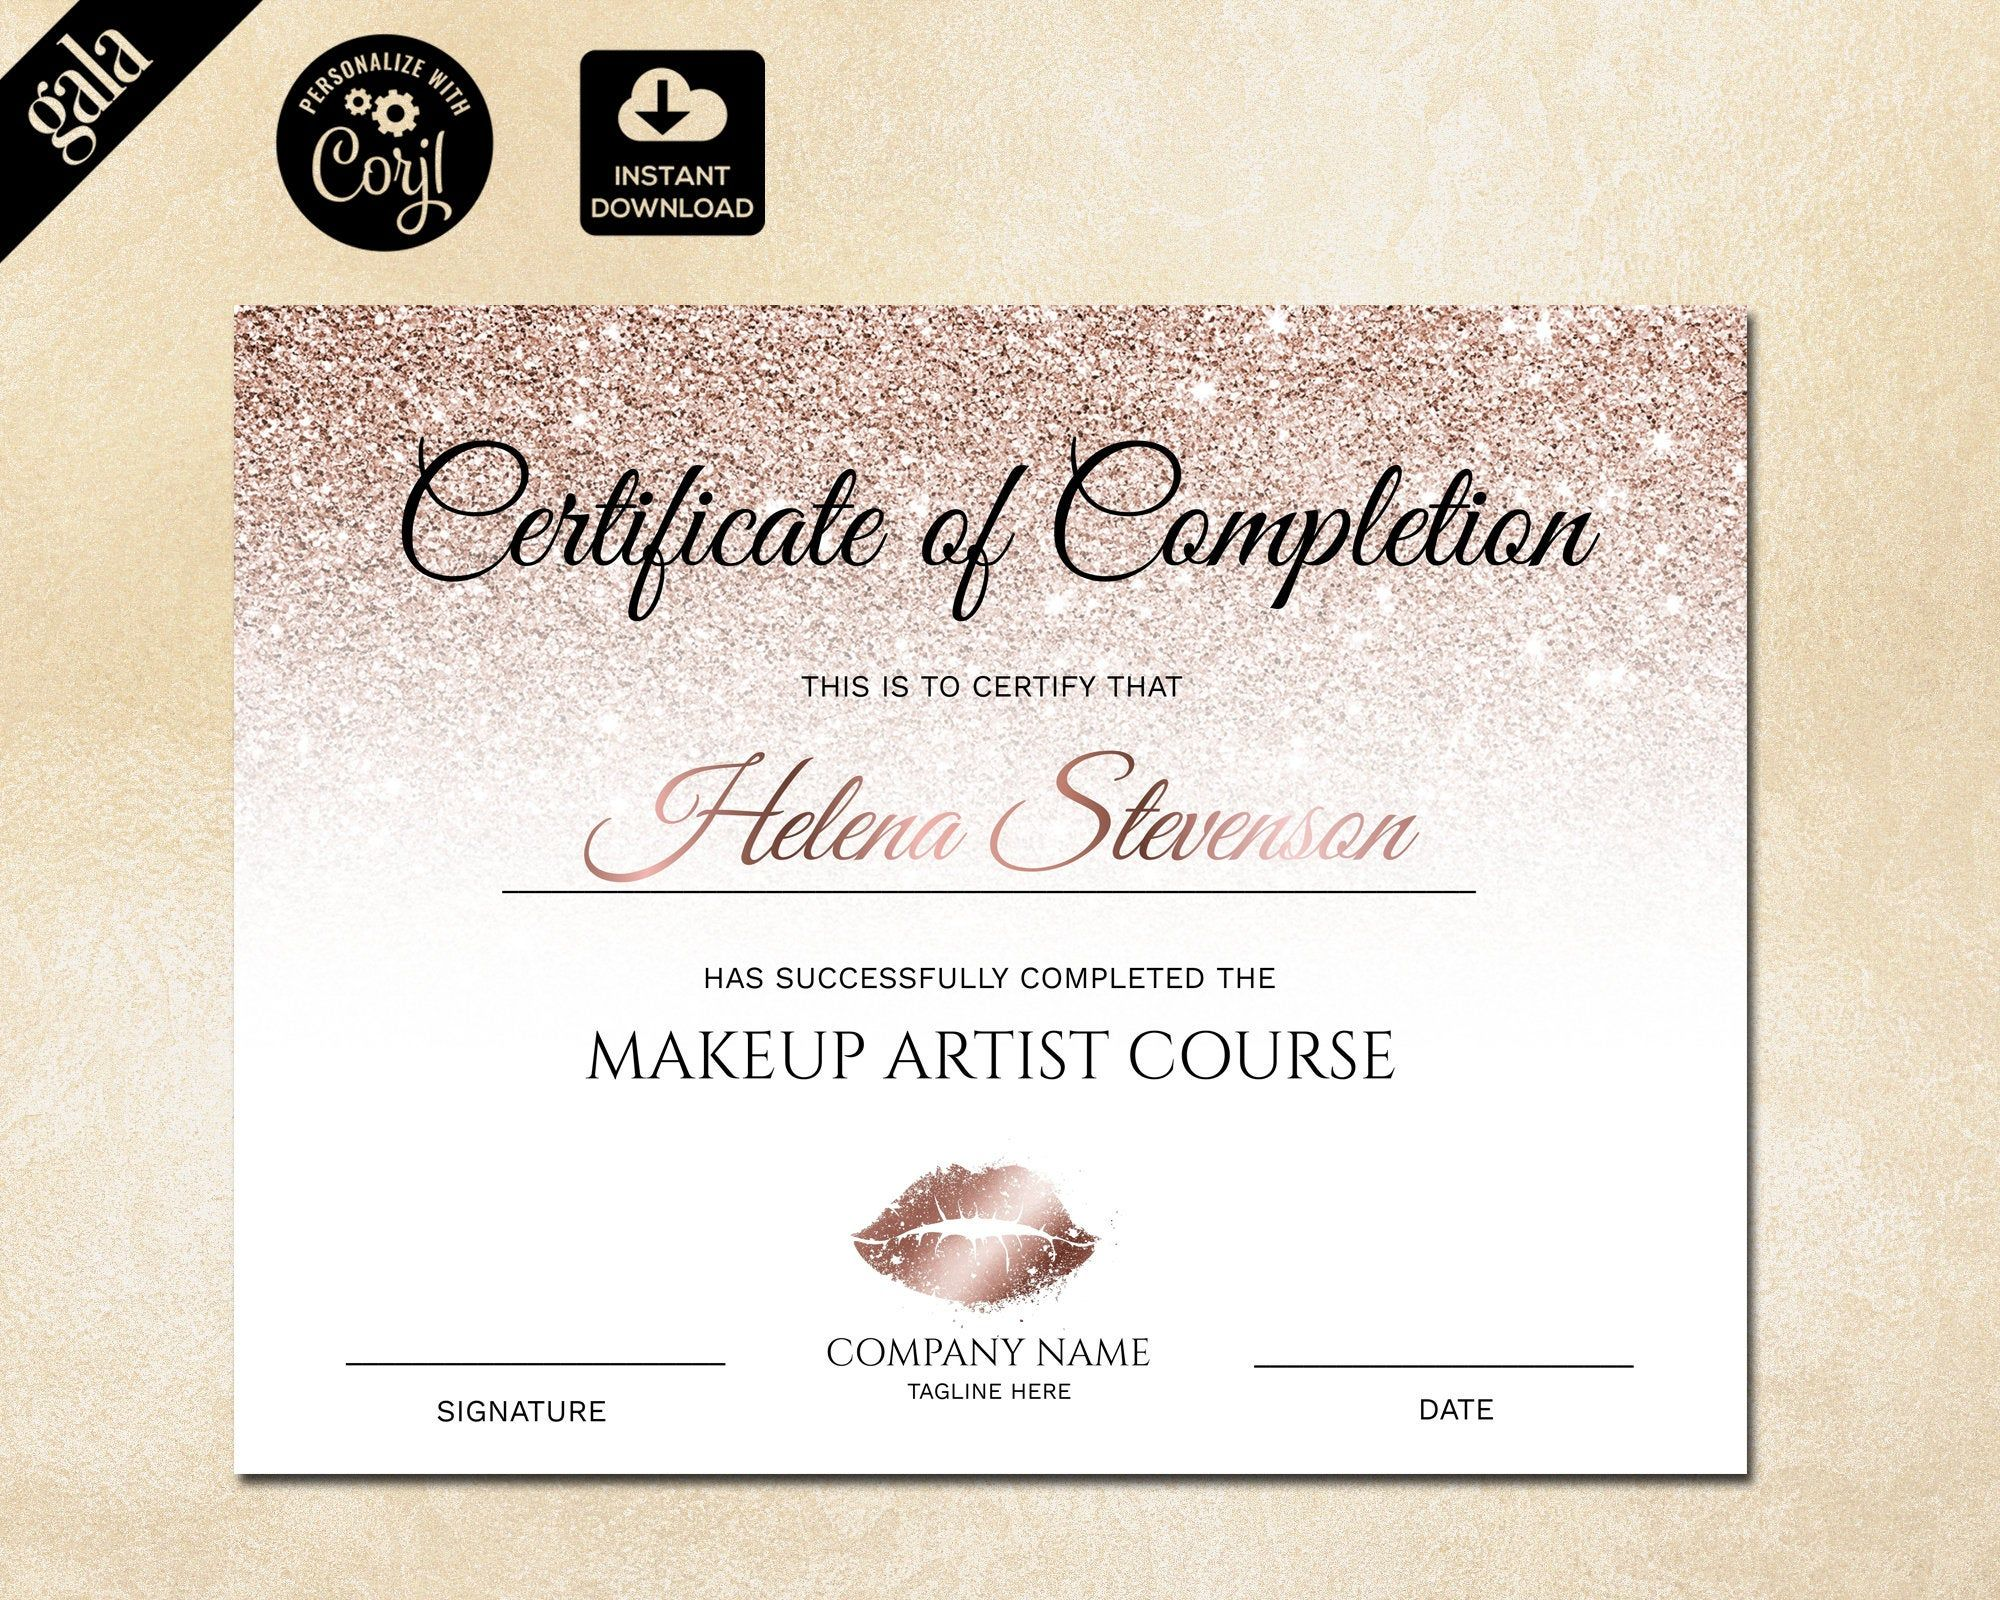 Certificate Of Completion Makeup Certificate Template Rose Etsy Certificate Of Completion Certificate Templates Custom Soap Labels Make a certificate of completion